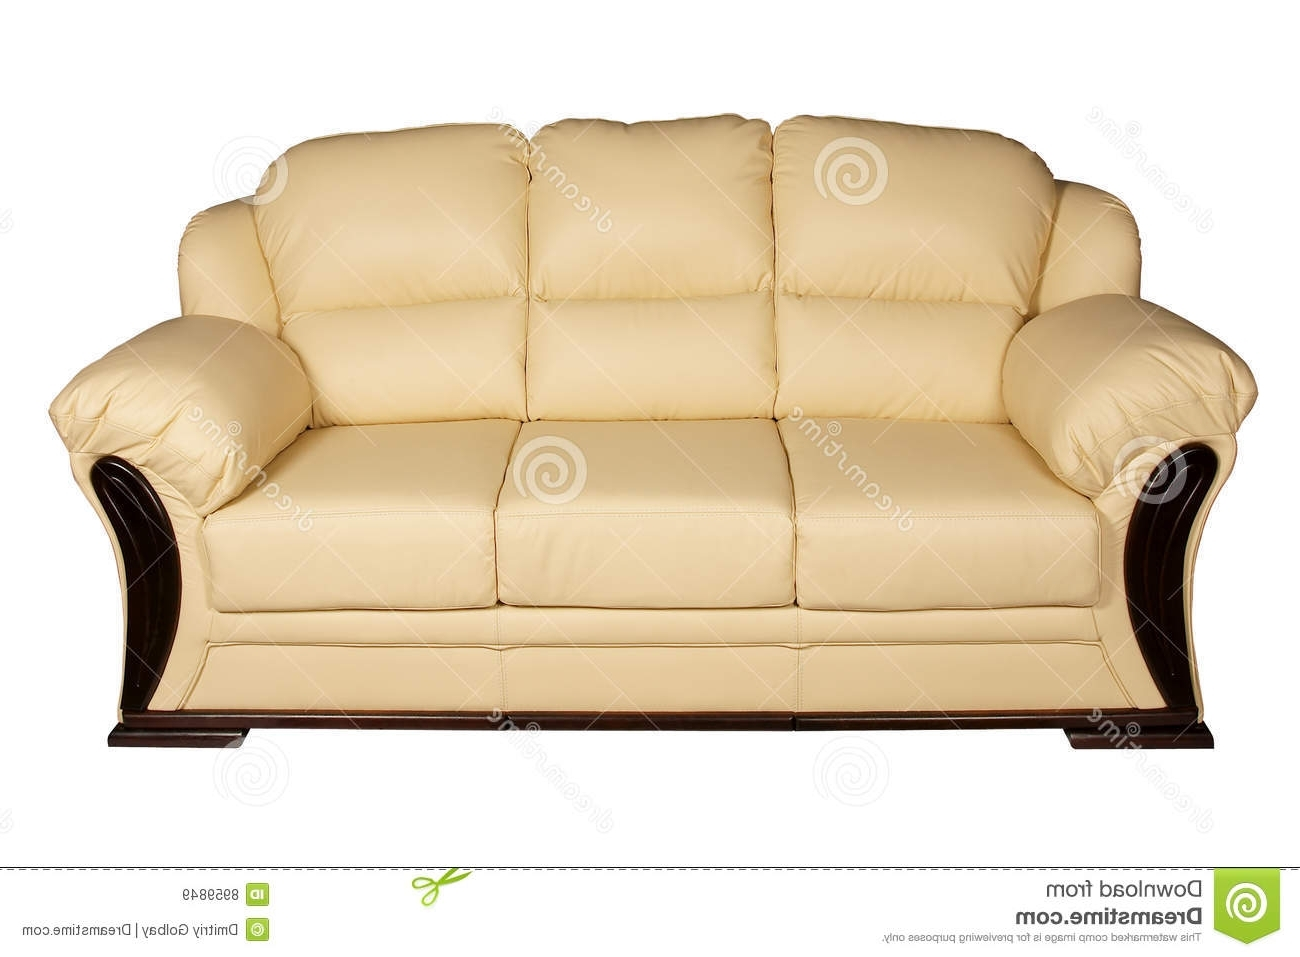 Perfect Cream Colored Sofa 27 For Office Sofa Ideas With Cream Within Widely Used Cream Colored Sofas (View 5 of 15)